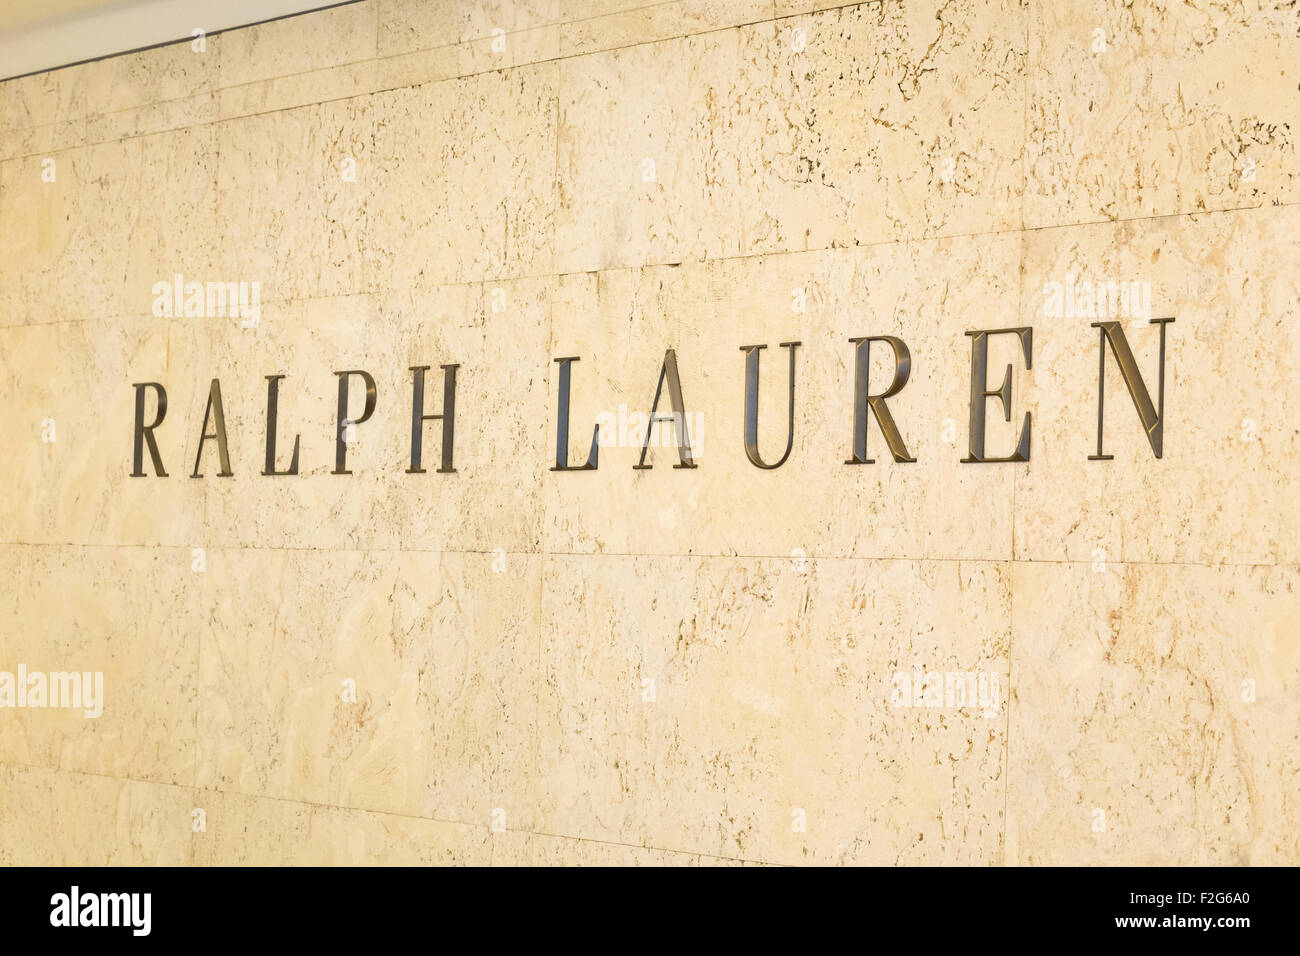 Ralph Lauren sign - Stock Image